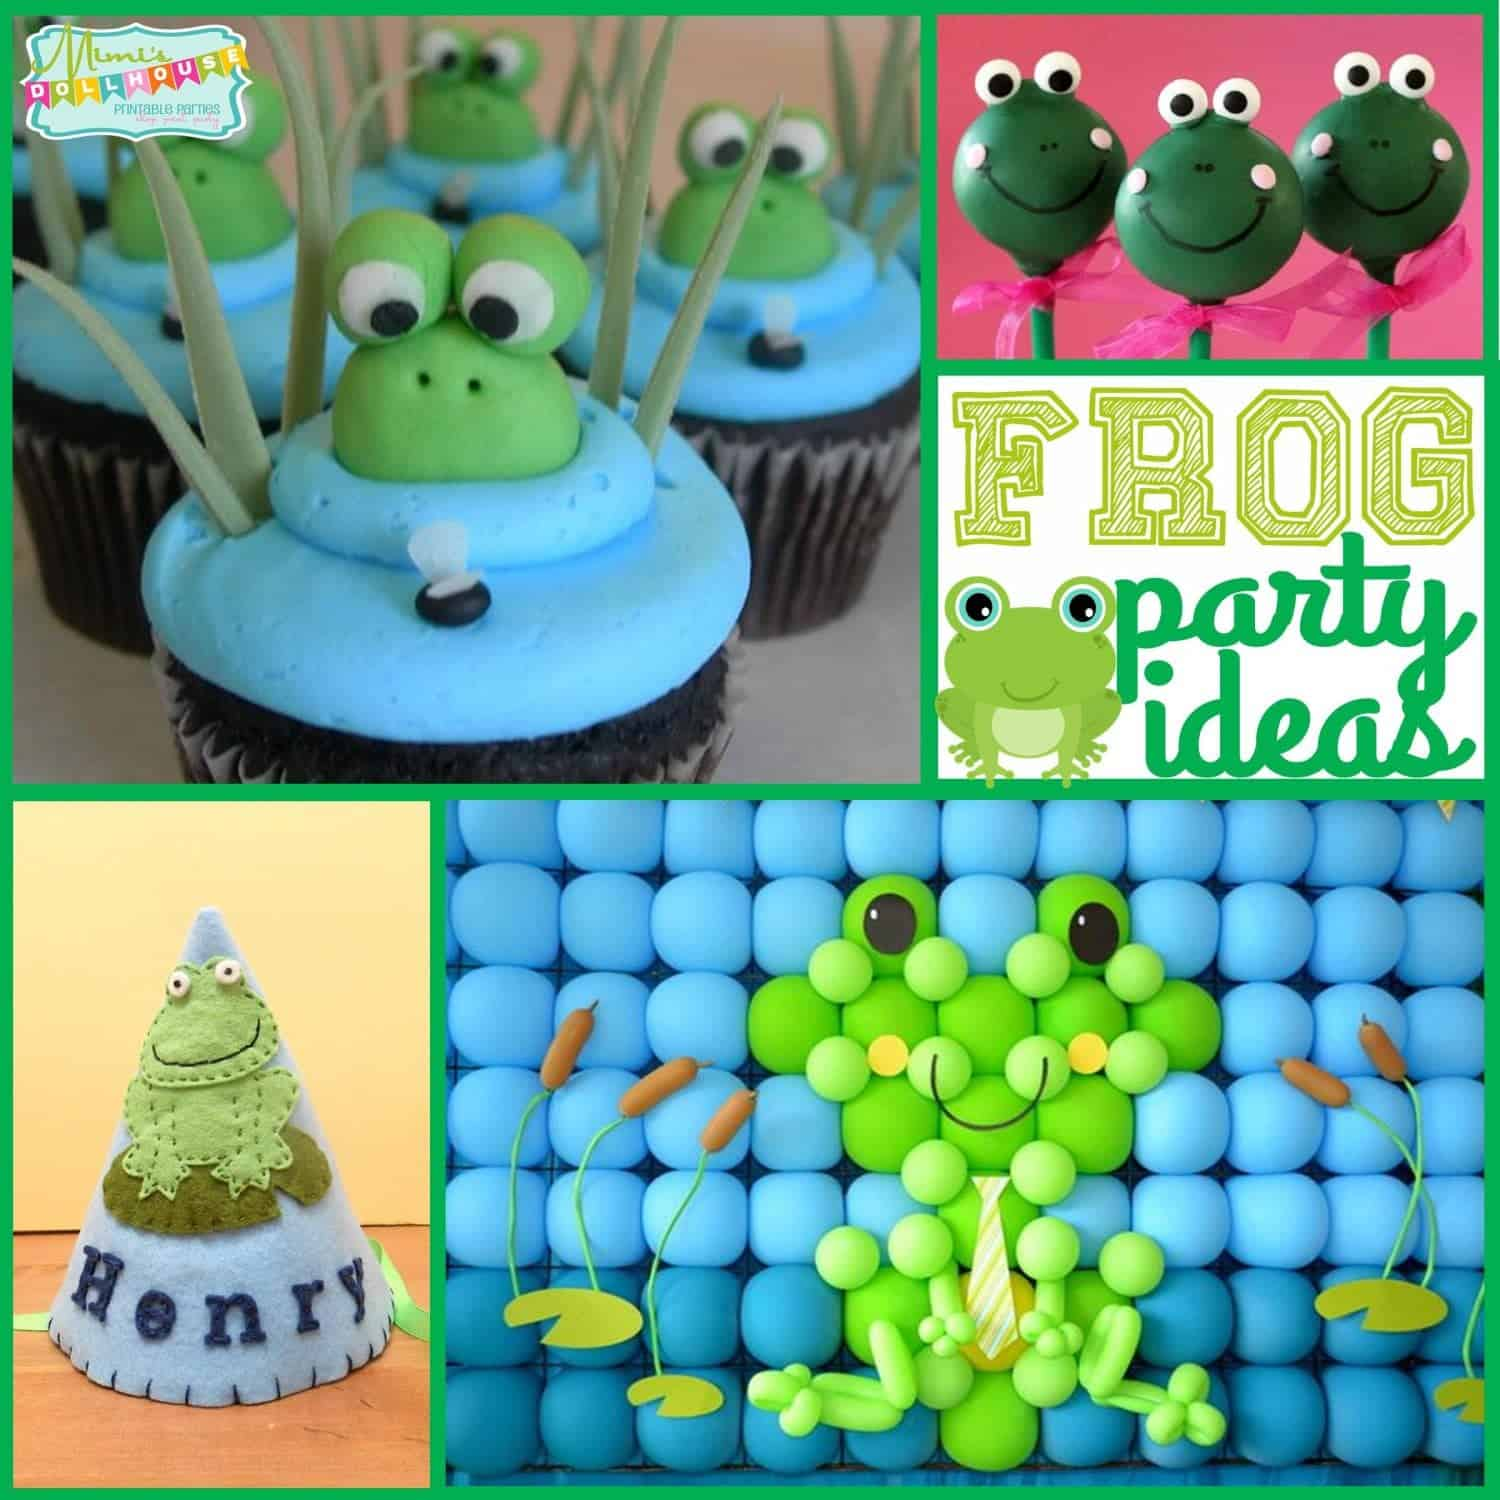 Frog Party: Hop over for some Frog Party Ideas